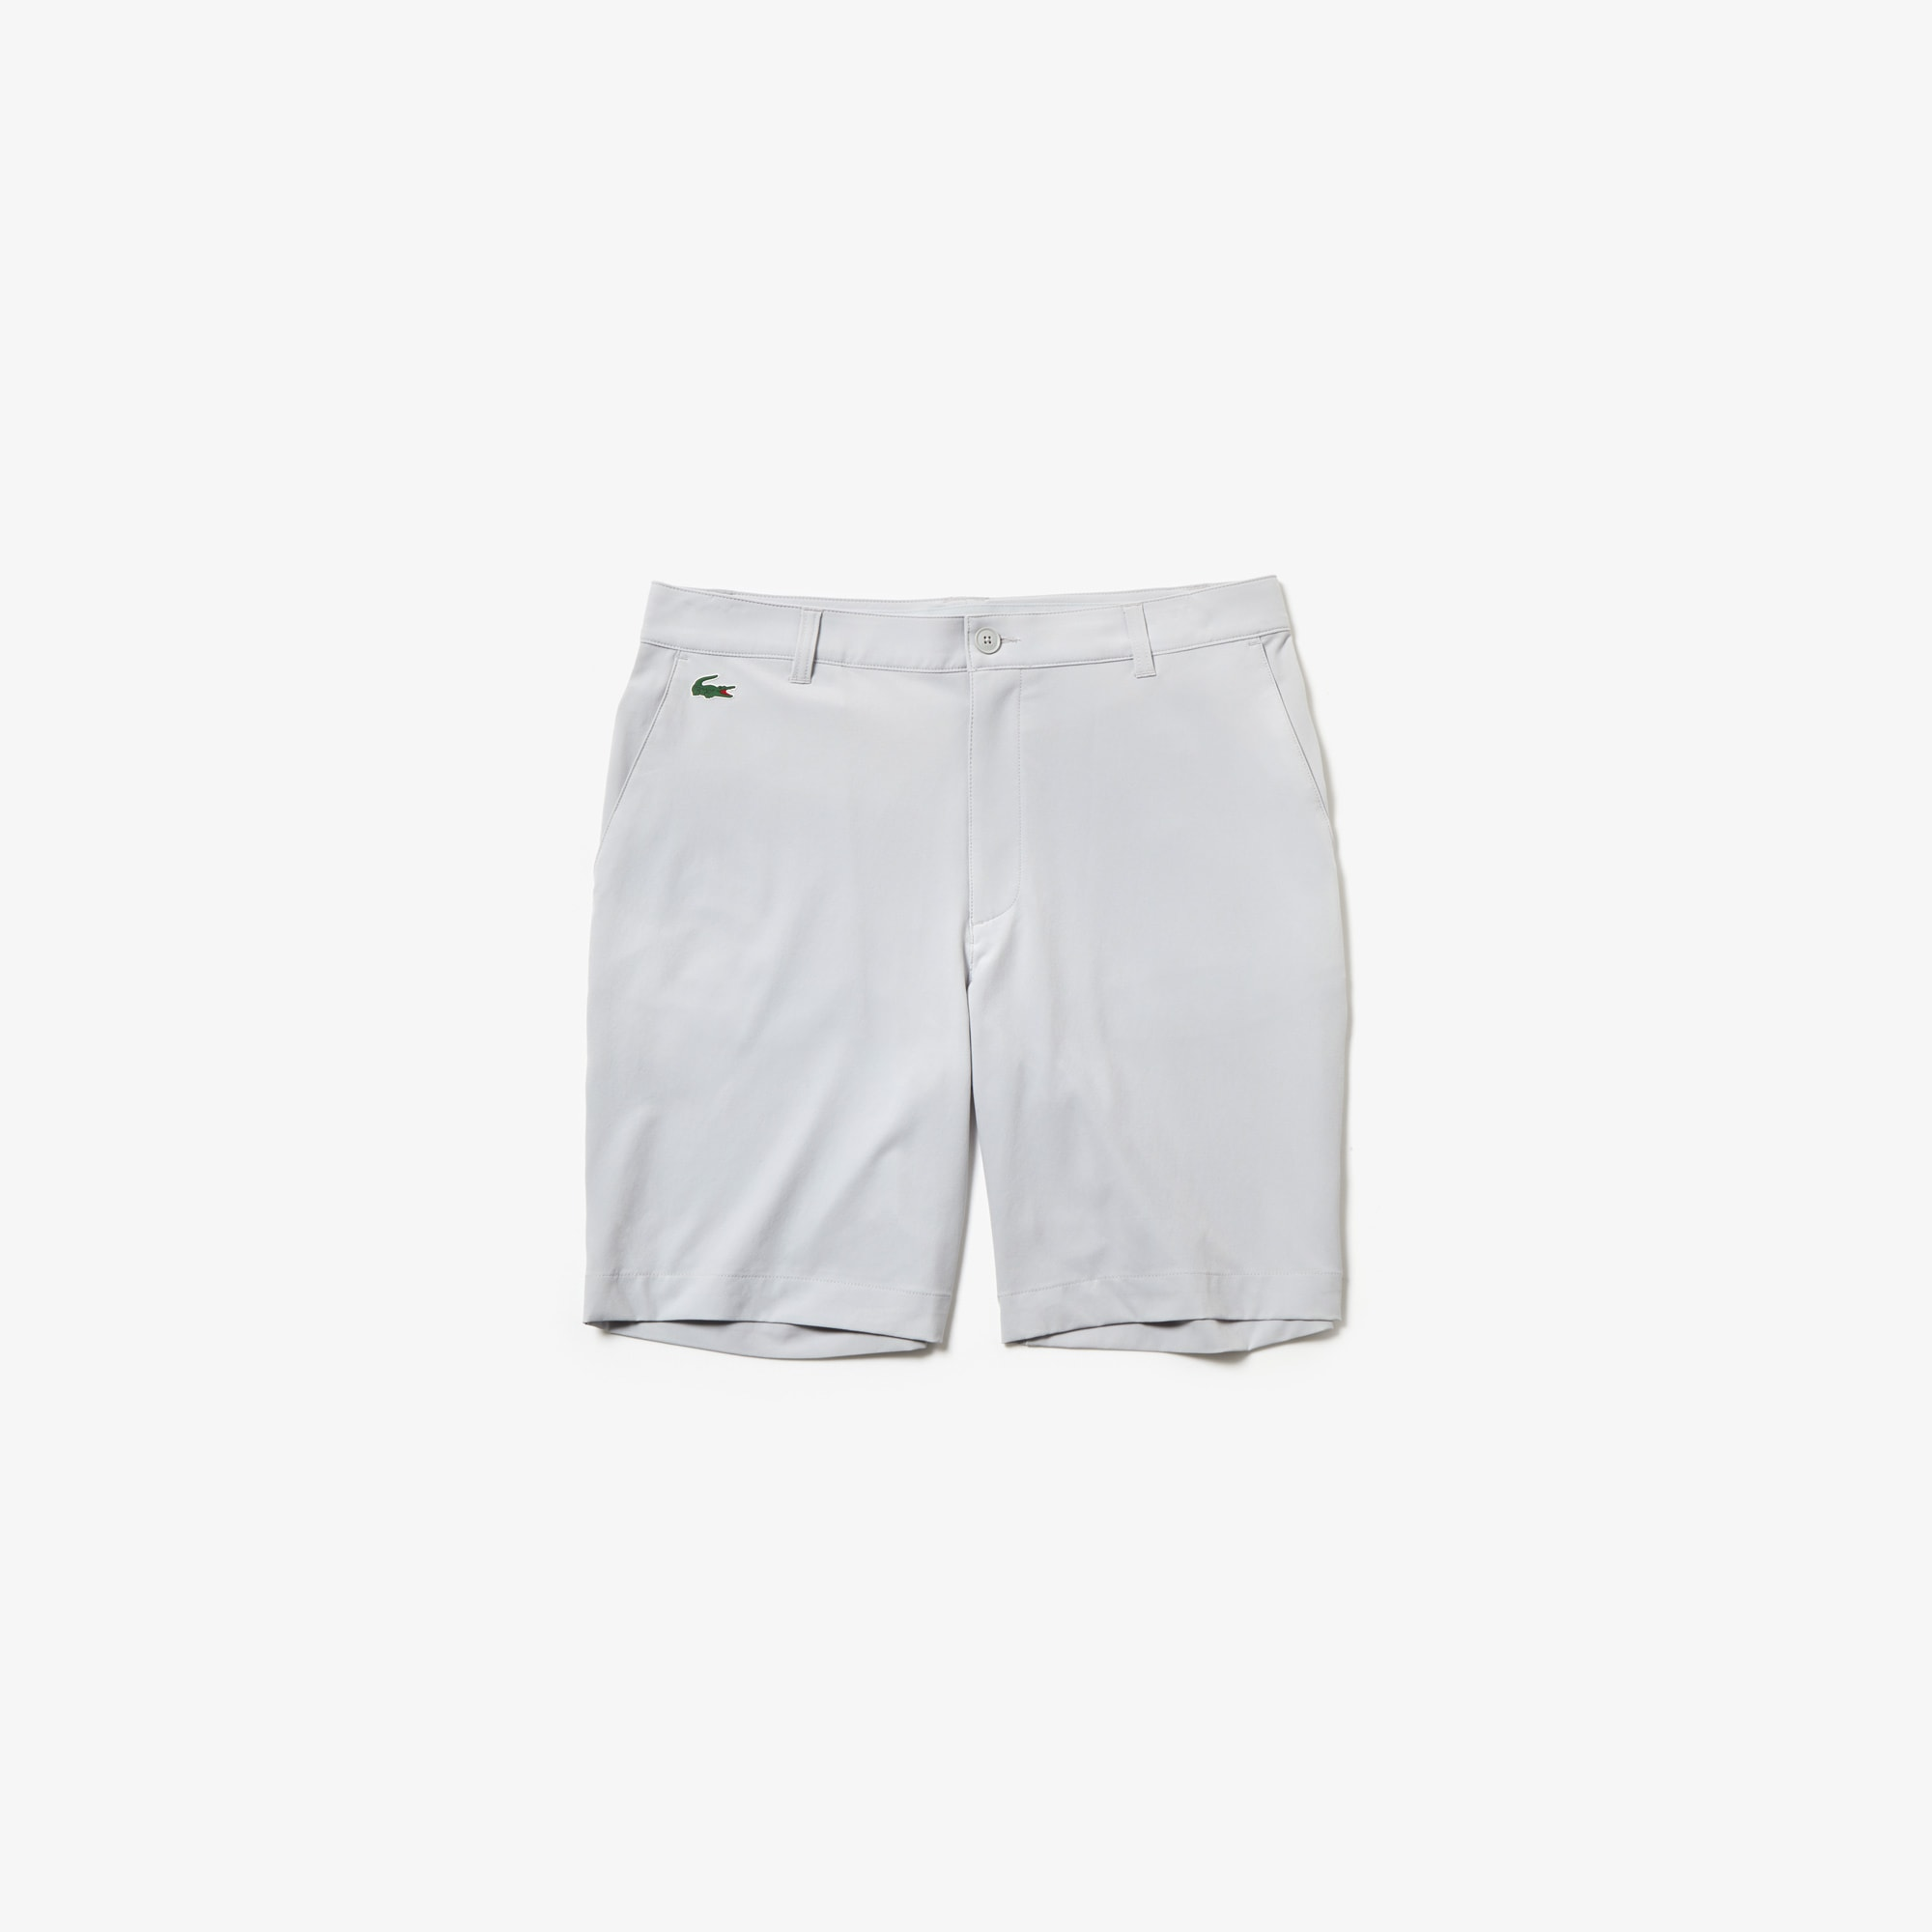 라코스테 Lacoste Mens SPORT Stretch Taffeta Technical Golf Bermuda Shorts,light grey